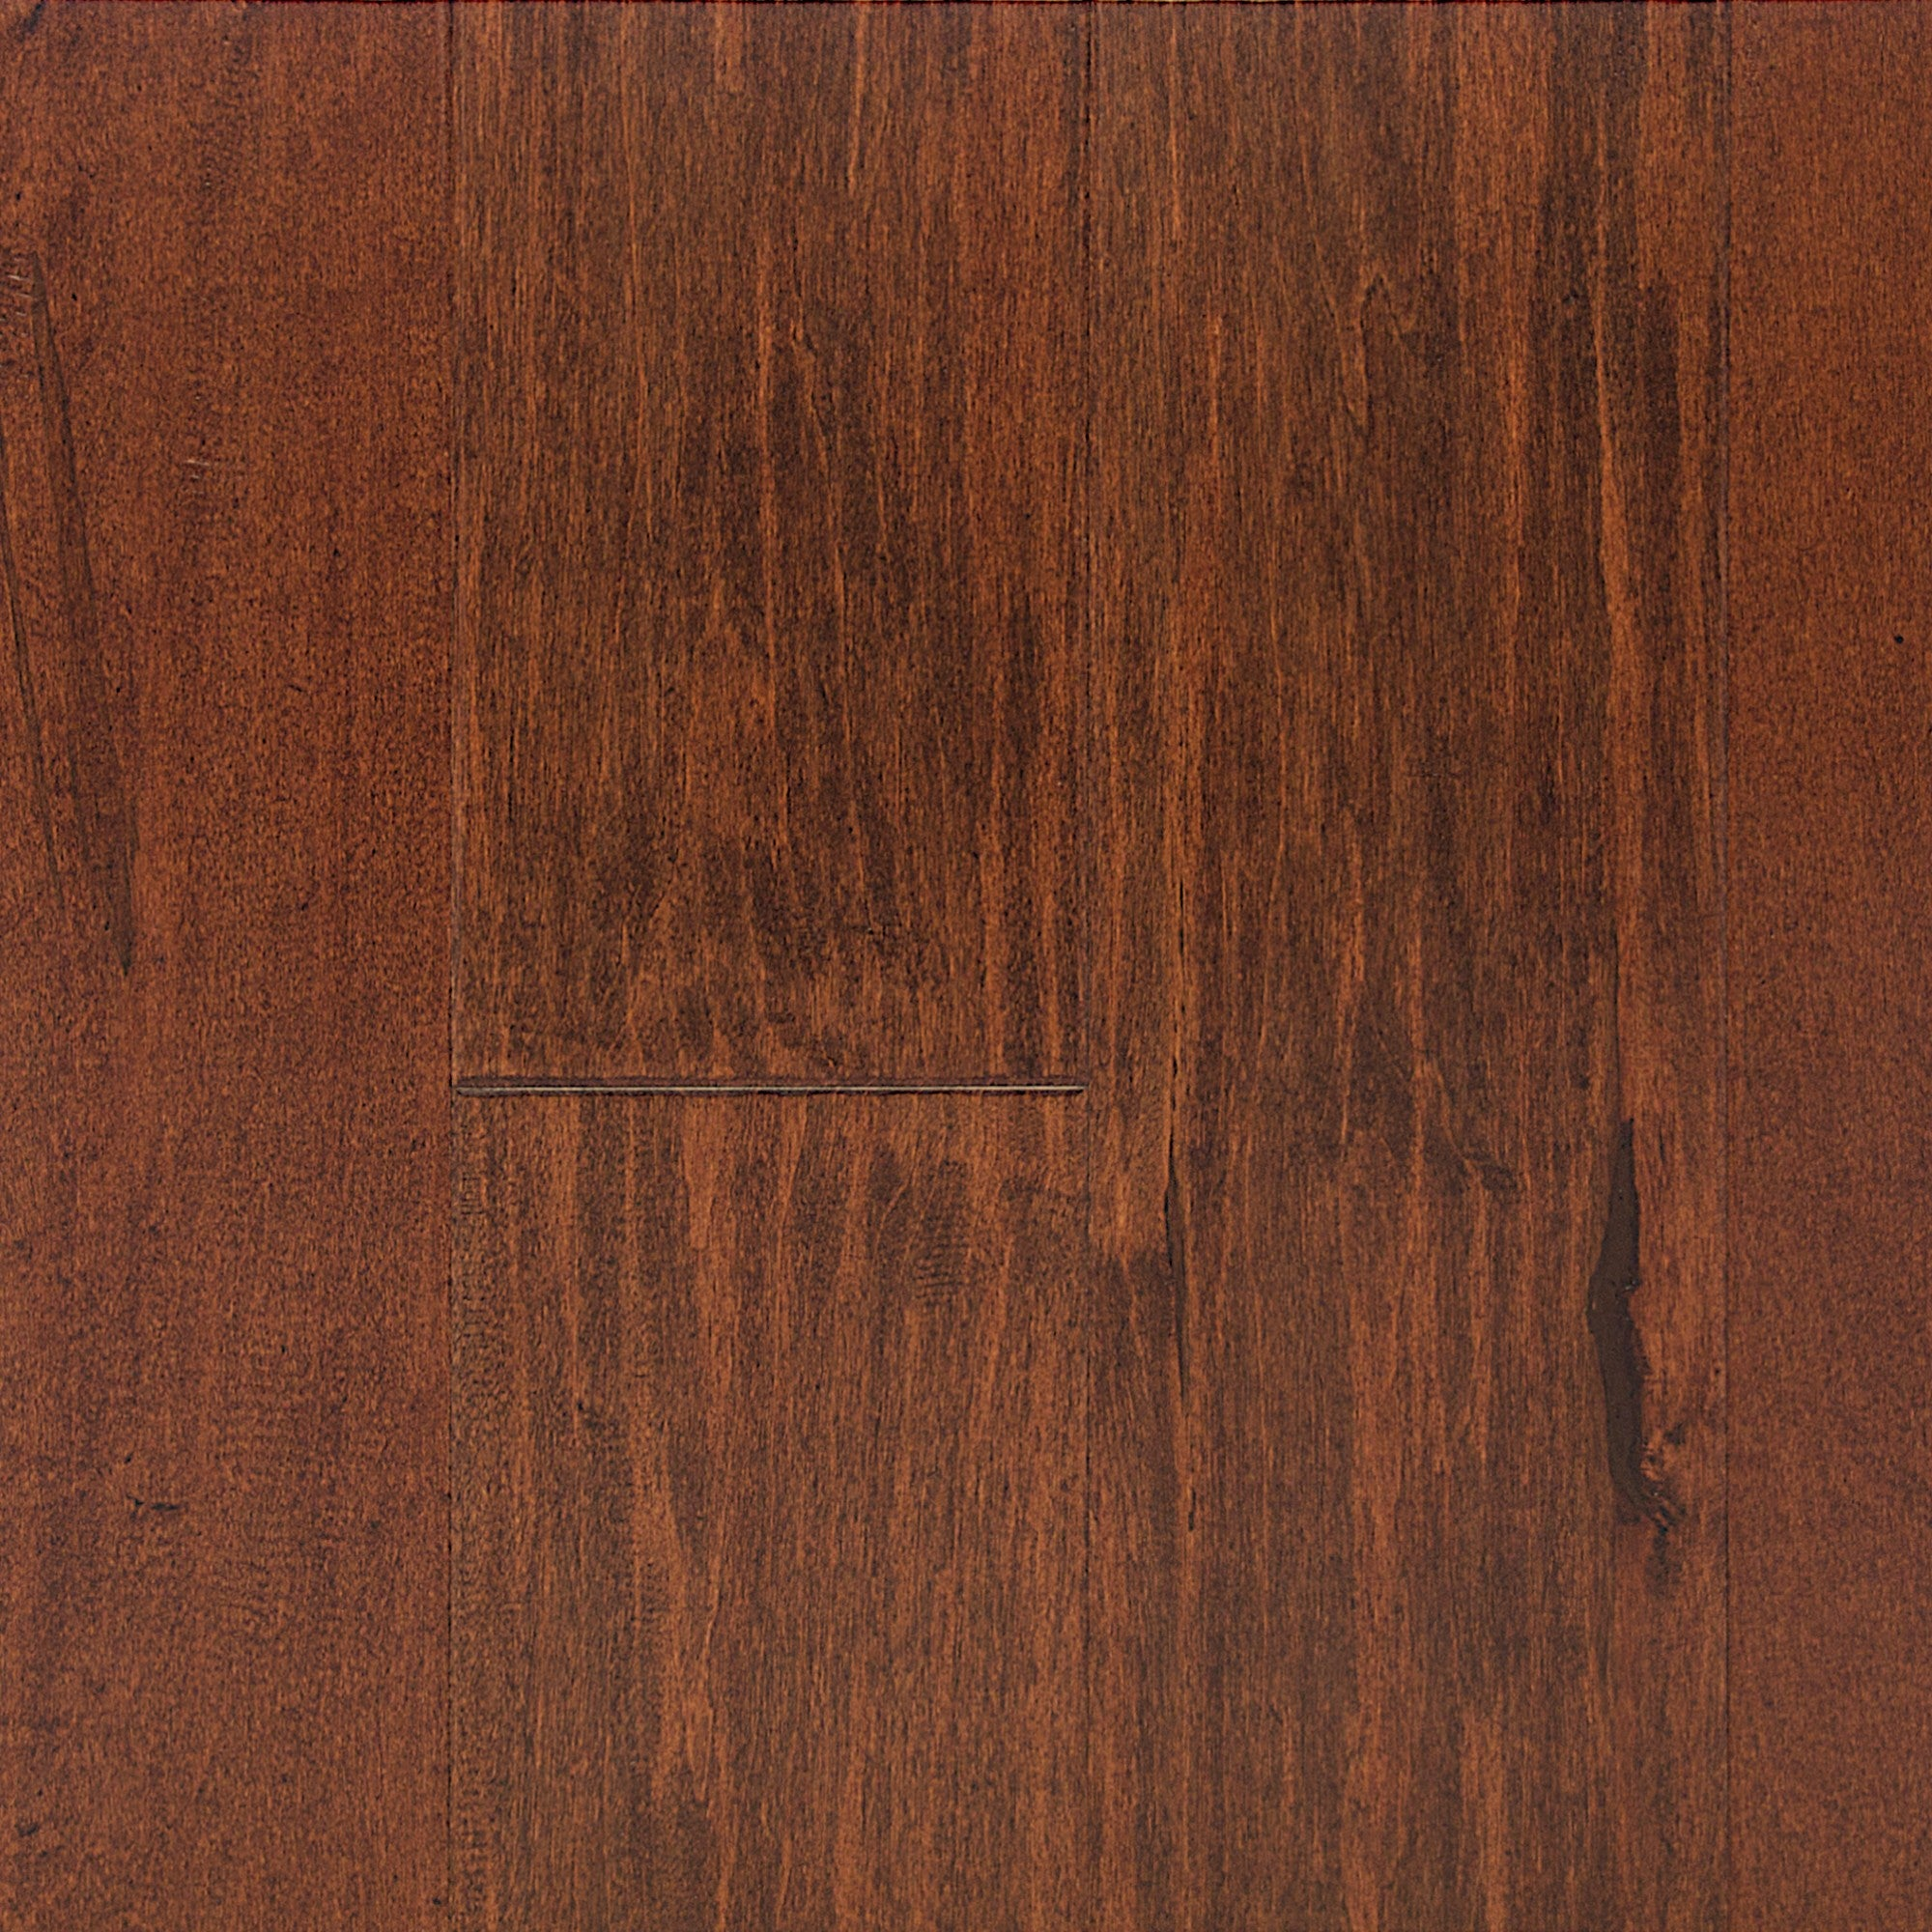 Handscraped - Maple Morocco